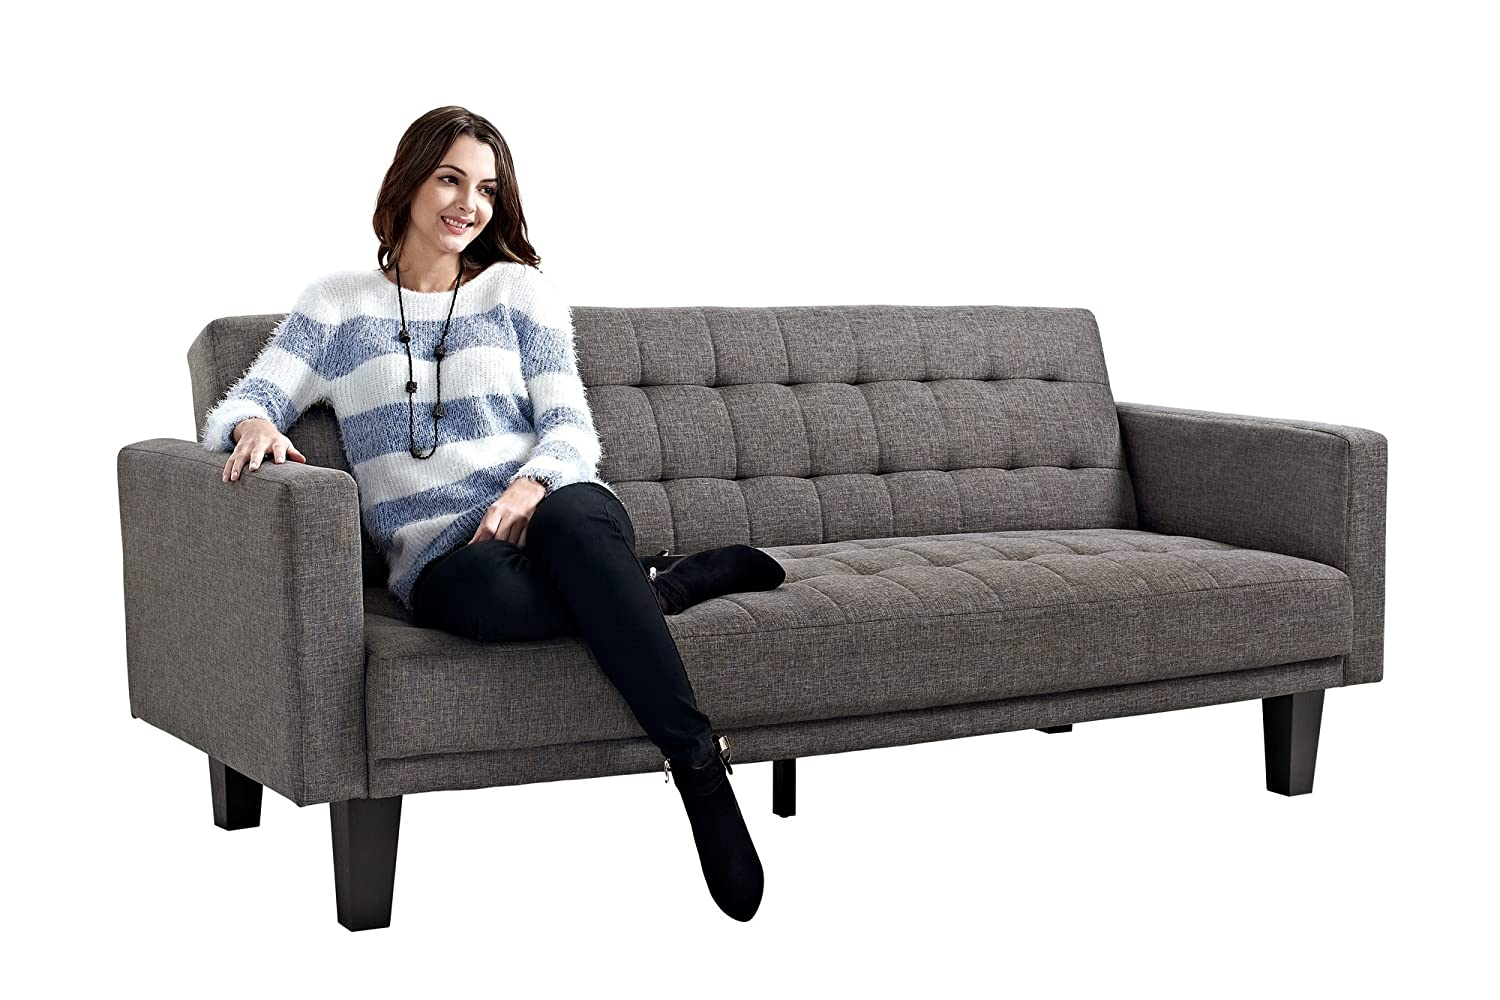 dhp sienna futon sofa couch gray bed house room furniture